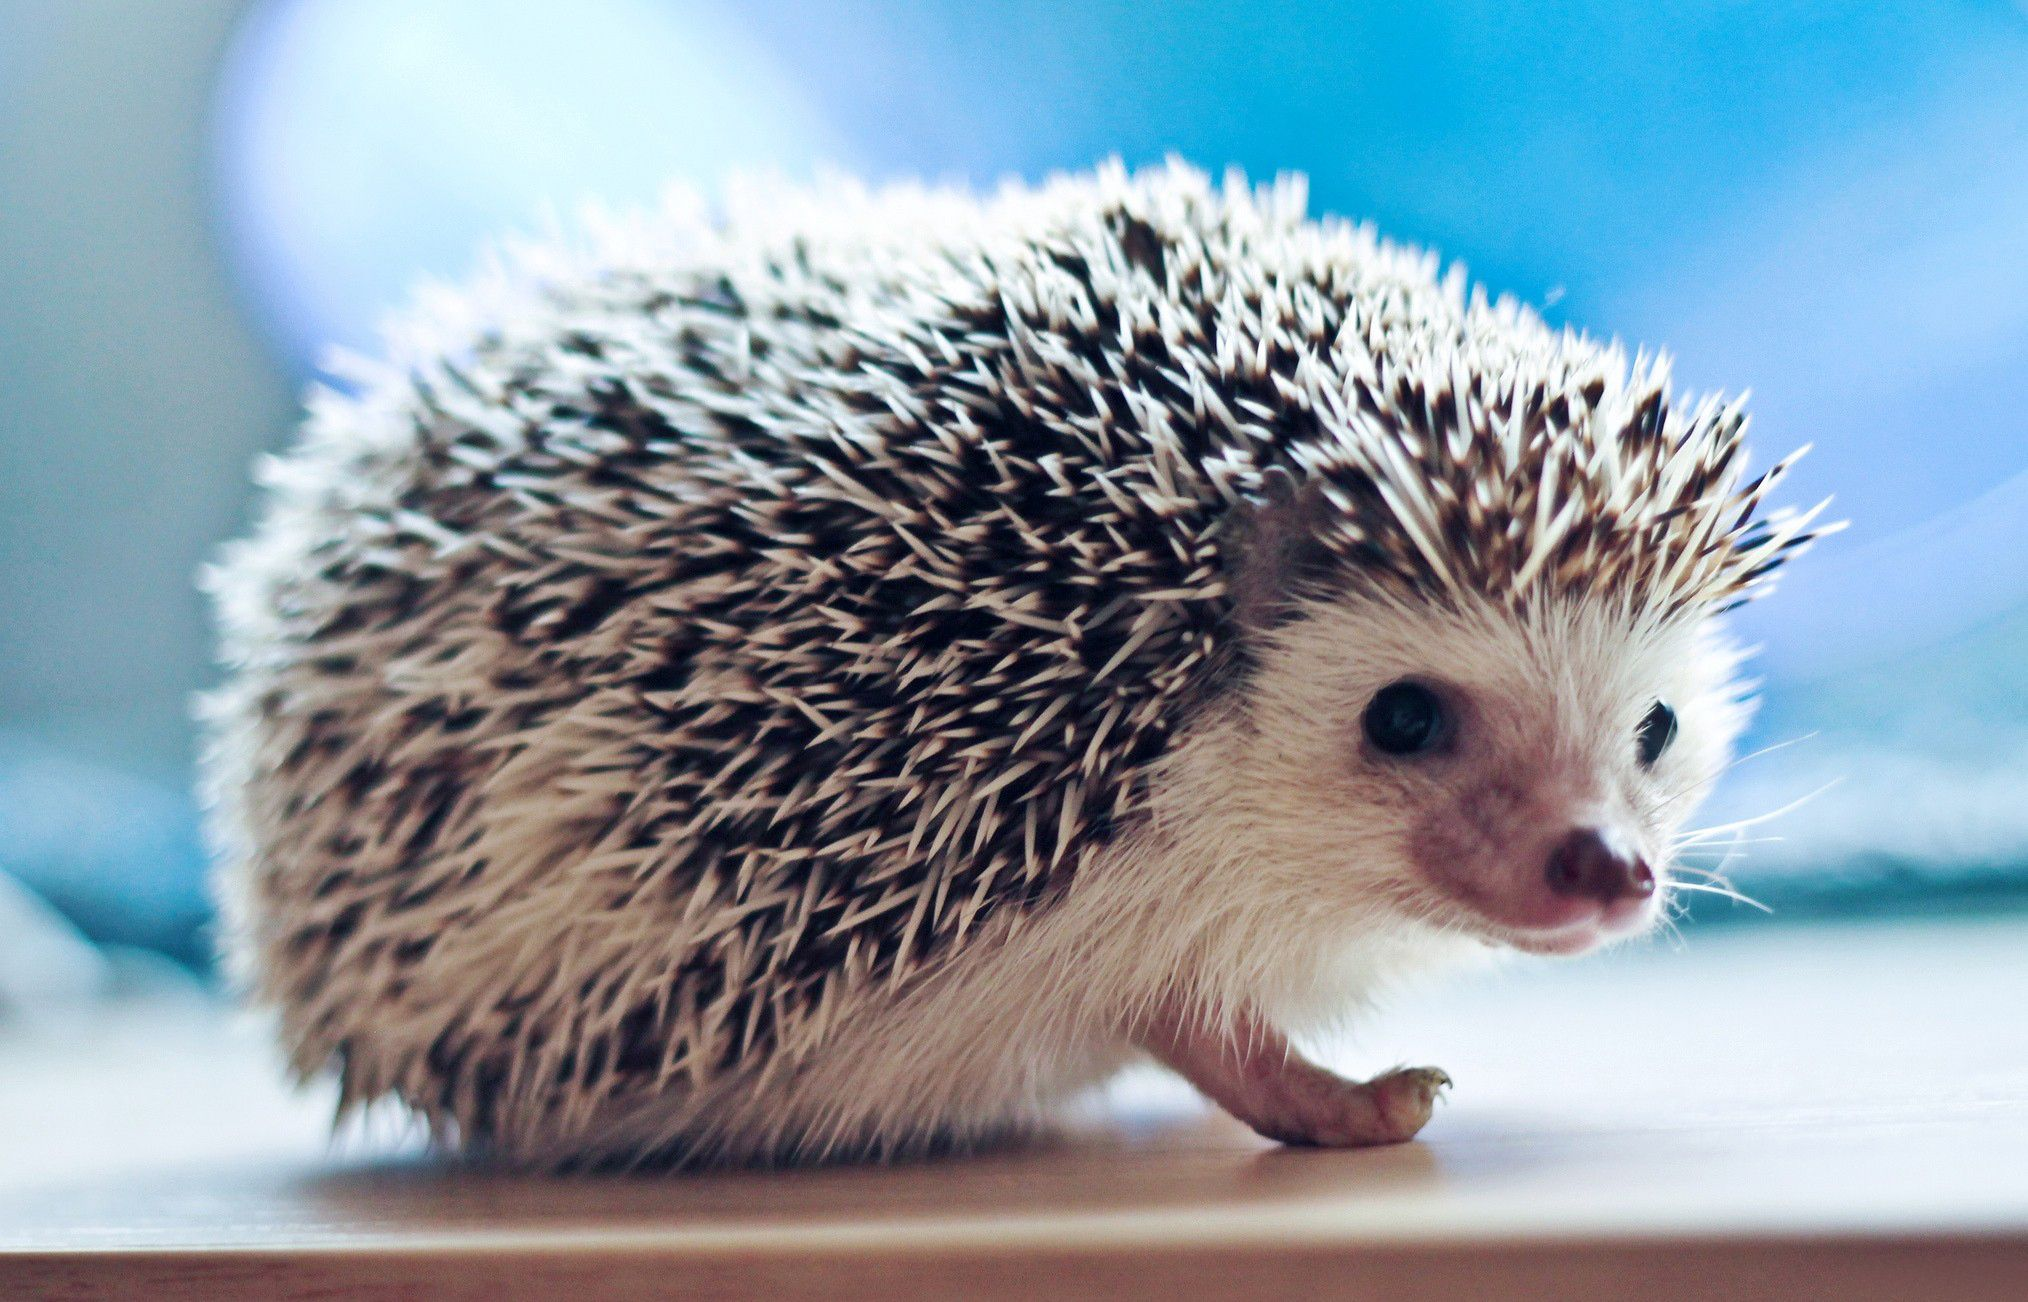 crew cut, view, needles, hedgehog, Crew cut, wallpapers , Pc backgrounds, free photos